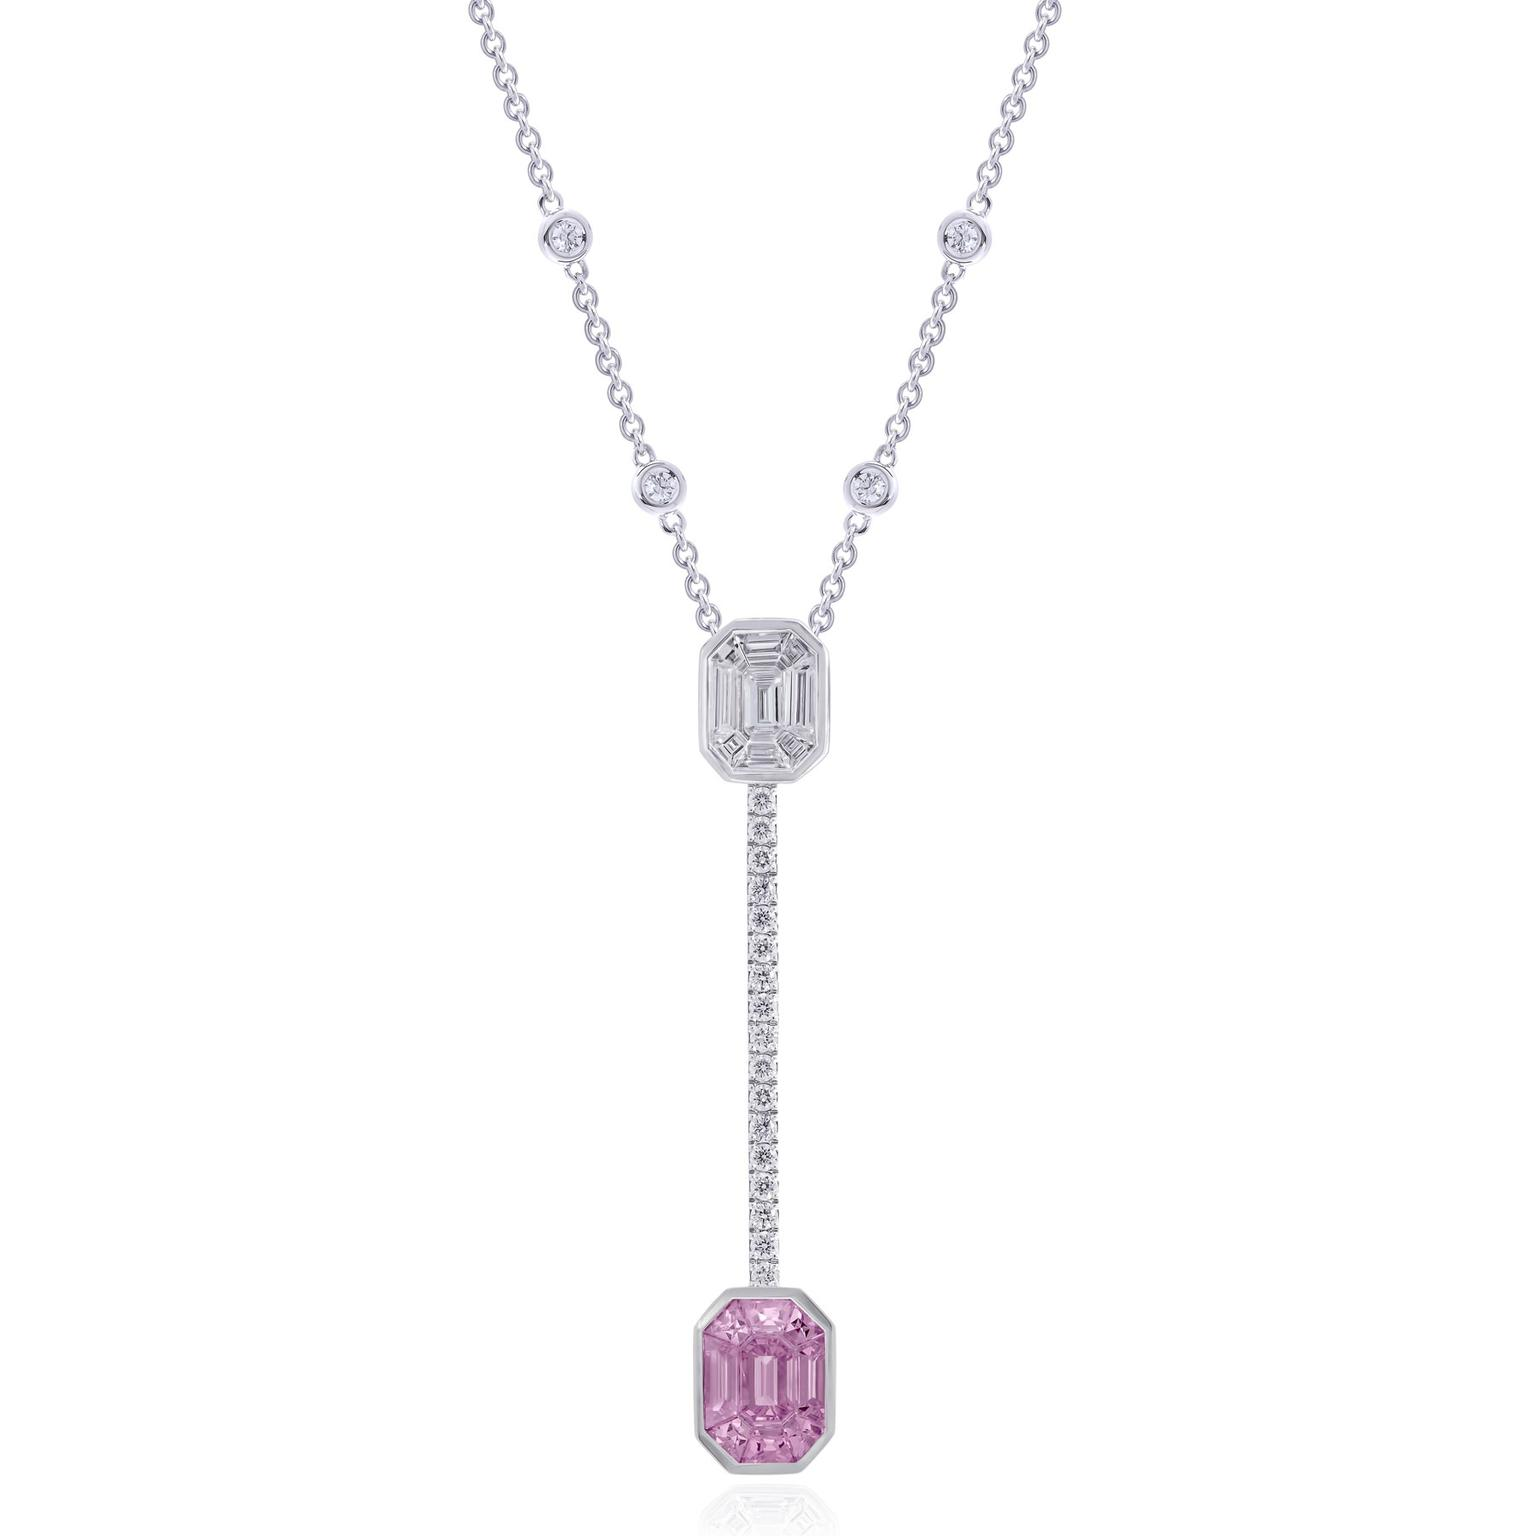 Stenzhorn pink sapphire and diamond necklace